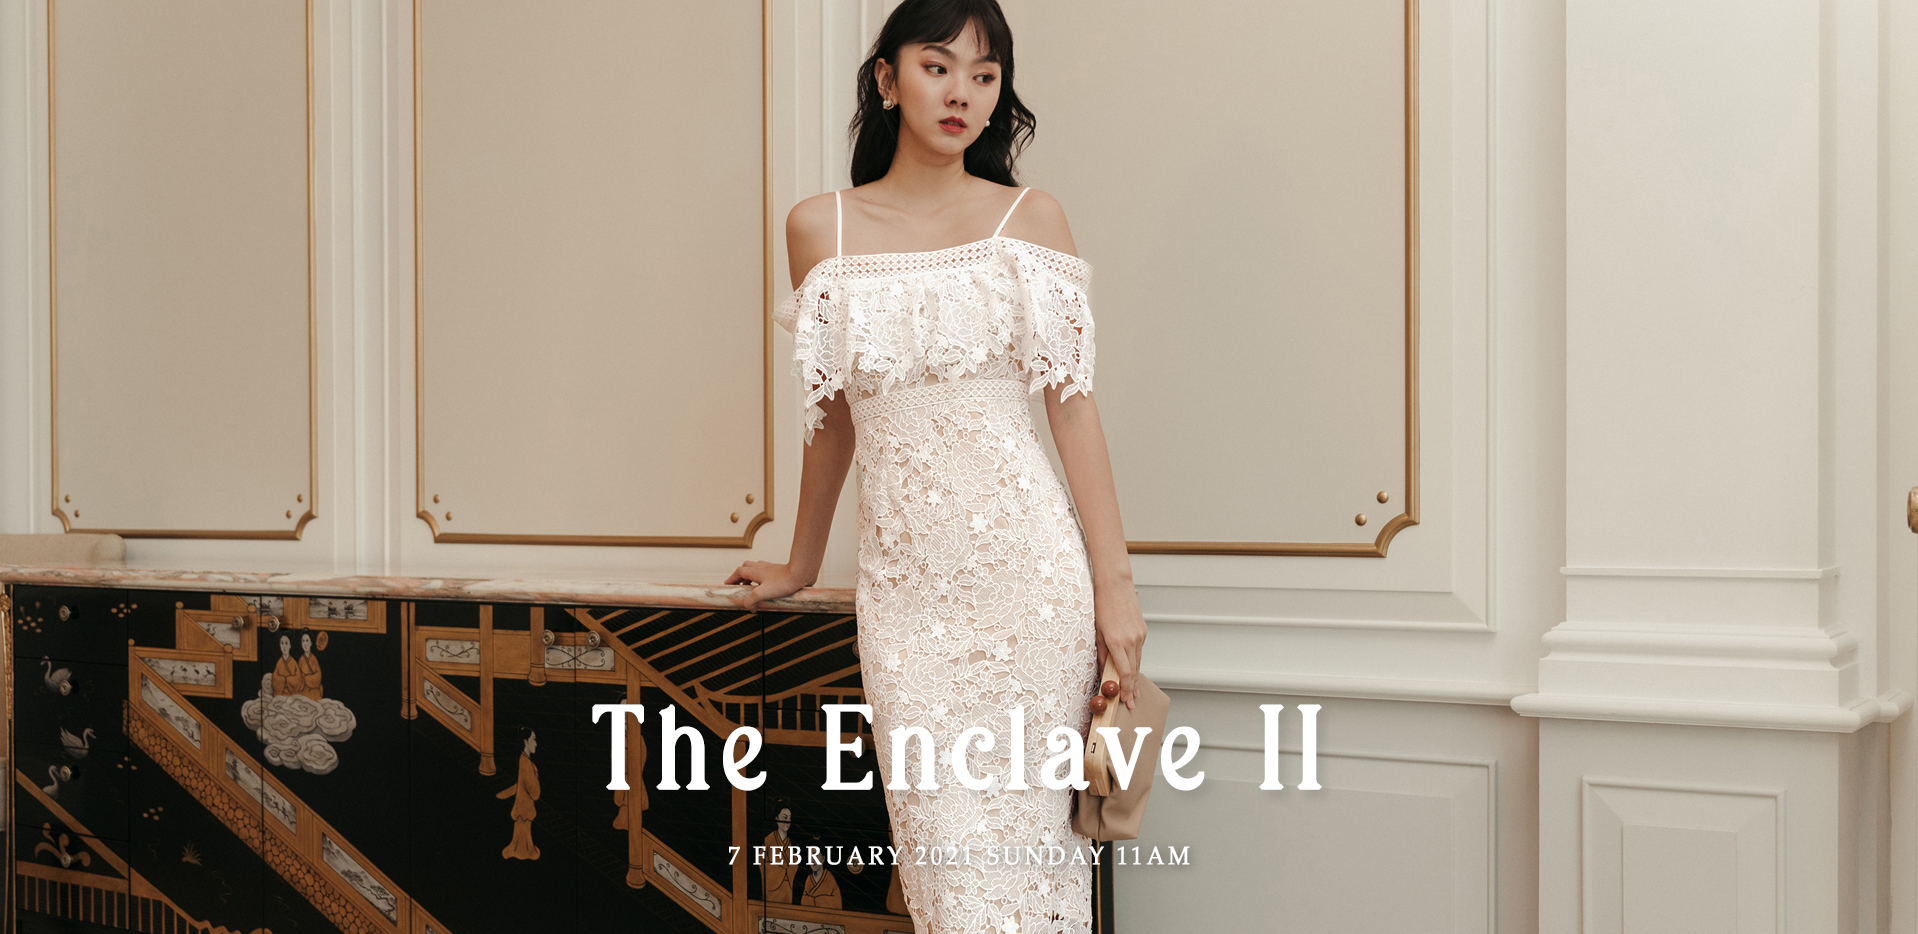 THE ENCLAVE II